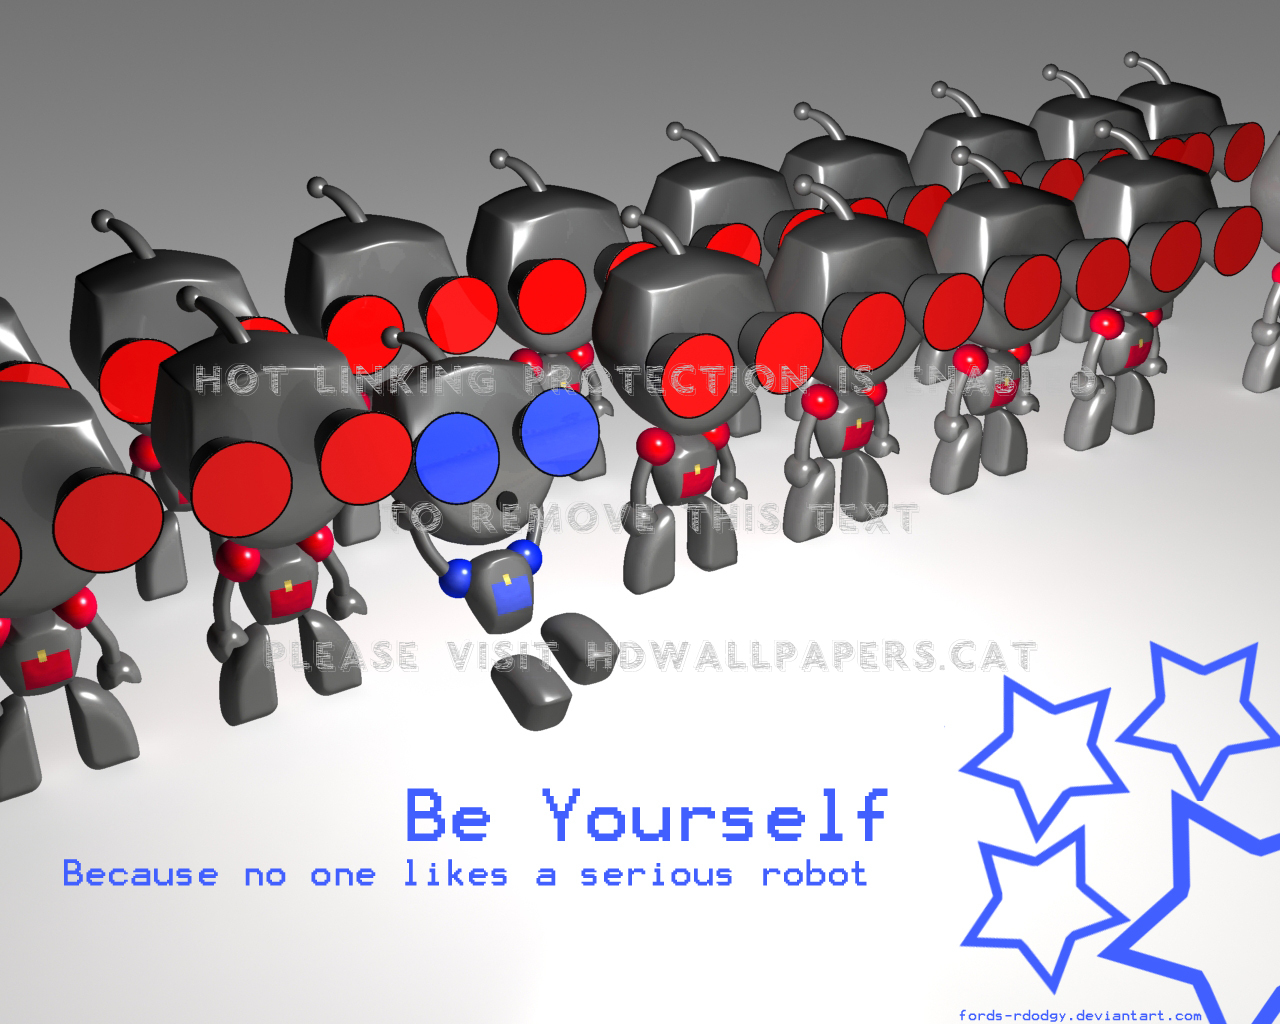 Be Yourself Gir Weird Red Funny Blue 3d And hd wallpaper #538419